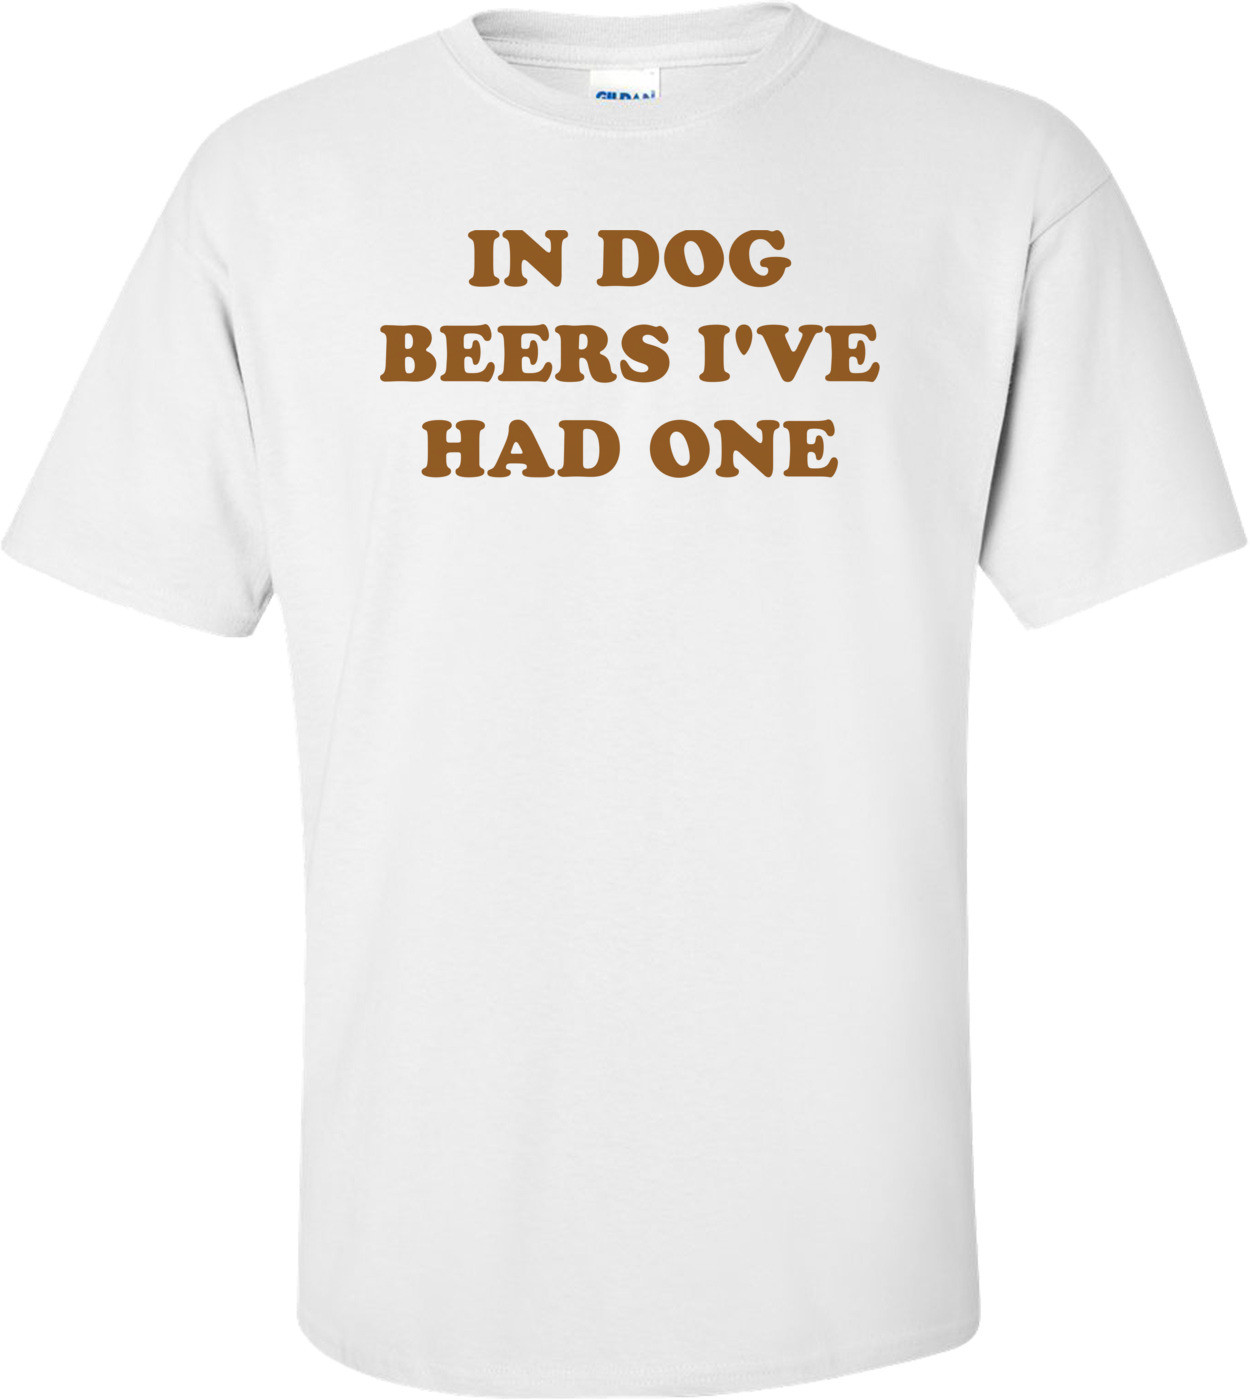 IN DOG BEERS I'VE HAD ONE Shirt